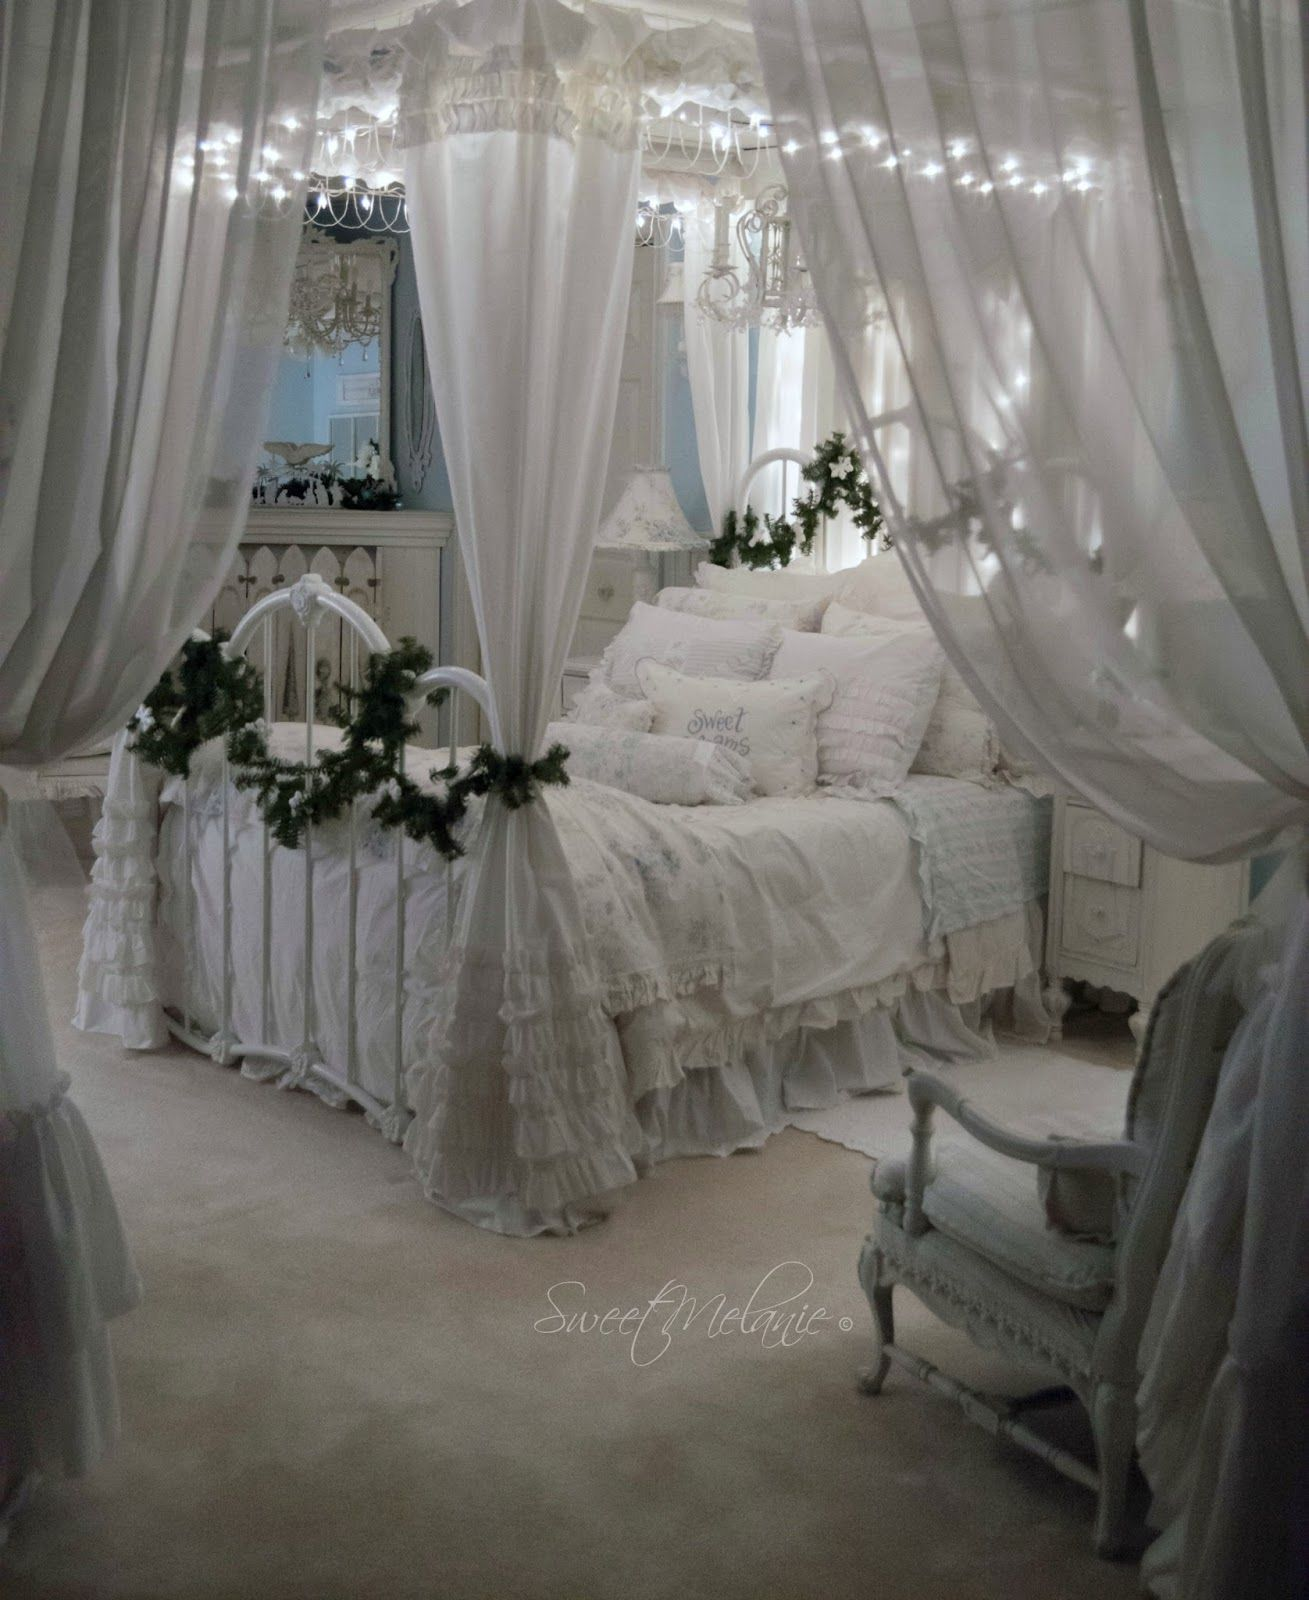 Shabby Chic Bedrooms: As Many Of You Know, Our Master Is Downstairs. It's A